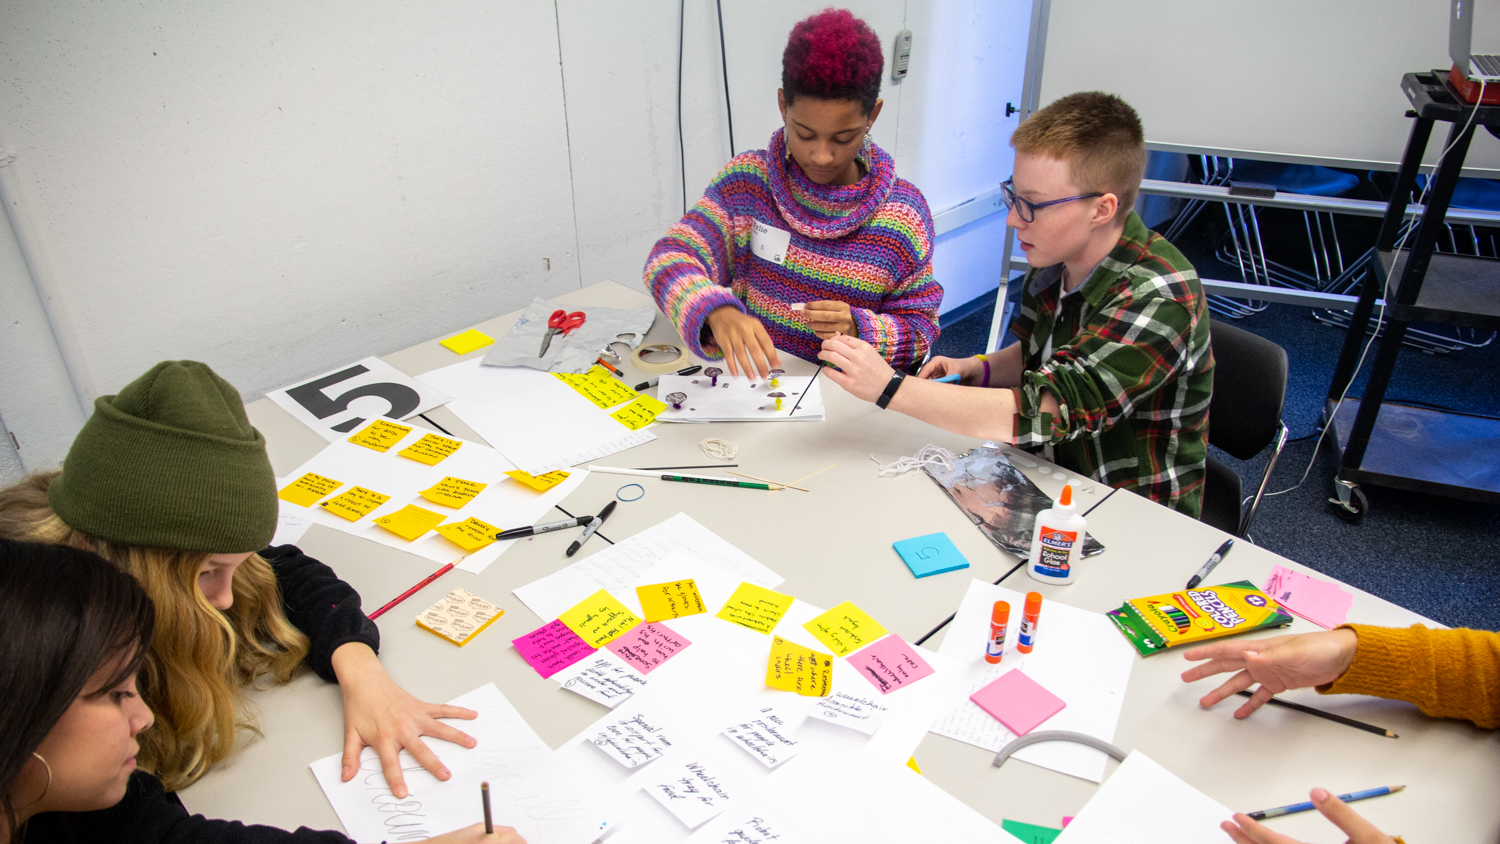 Students design together on field trip